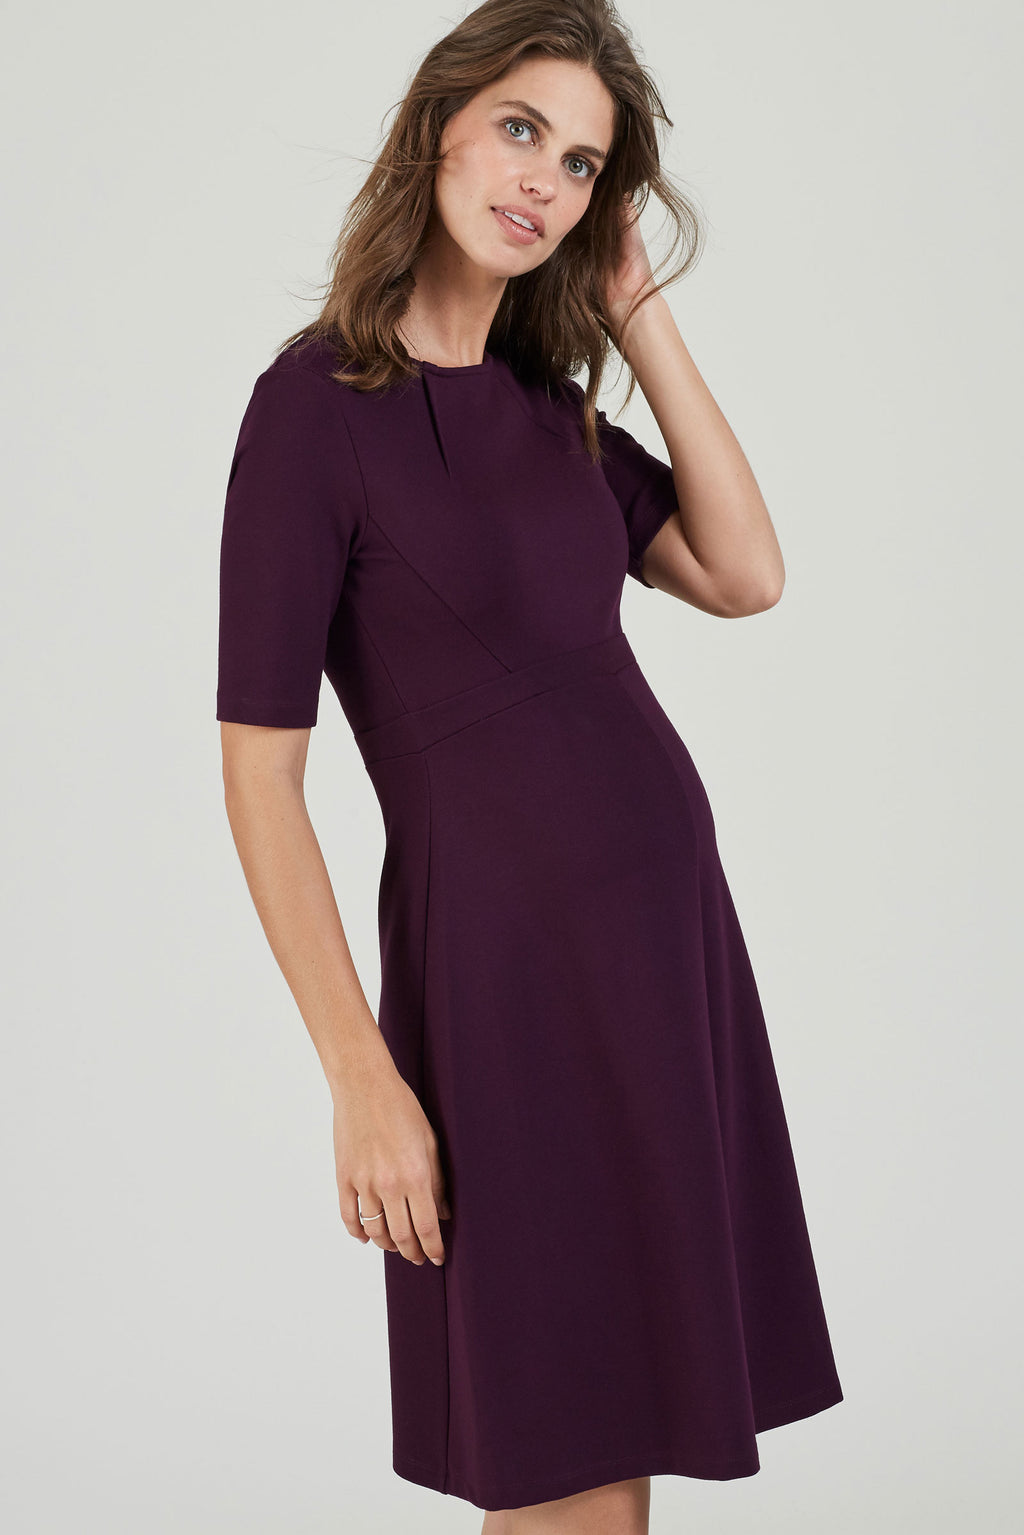 Isabella Oliver Kristen Ponte Maternity Dress